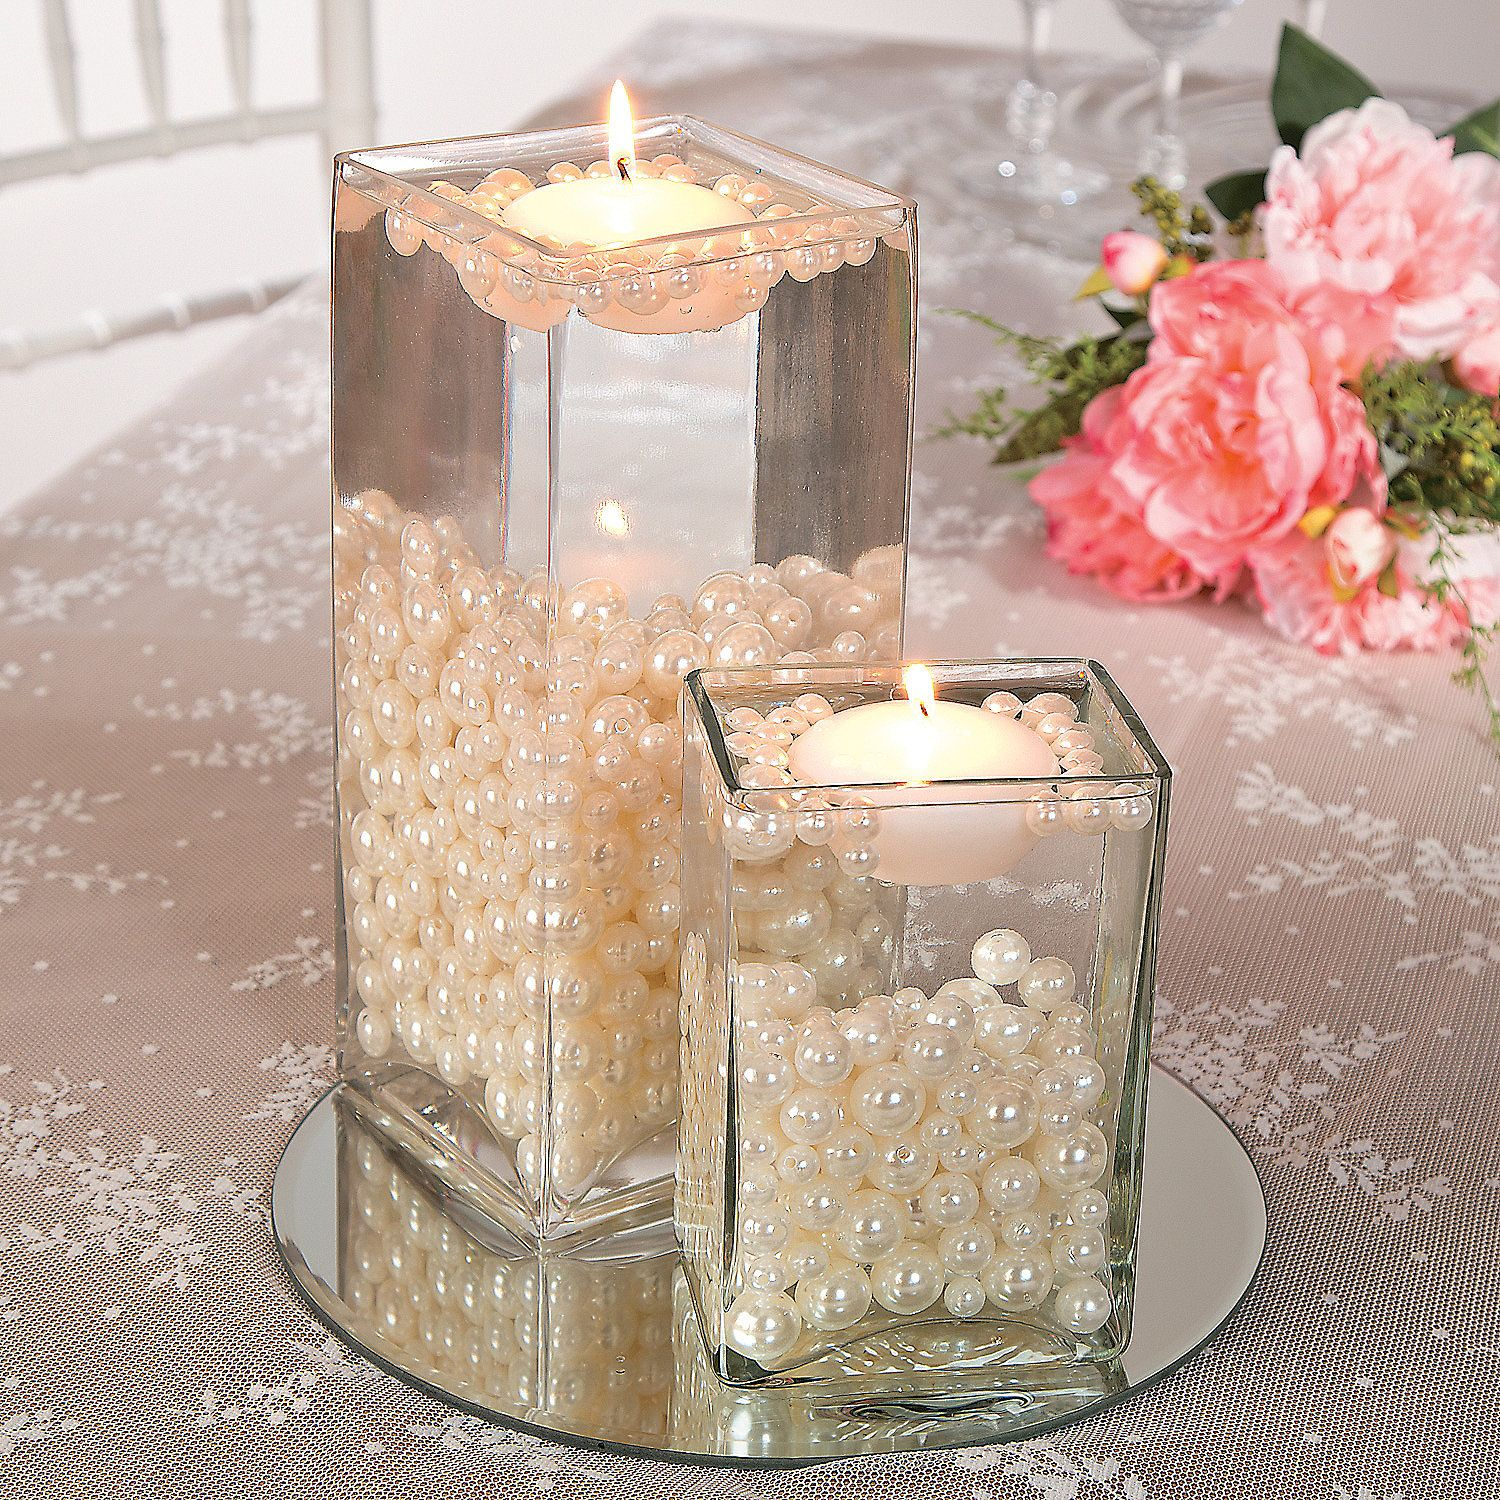 16 Stunning Floating Wedding Centerpiece Ideas: Easy Pearl Bead Centerpiece Idea